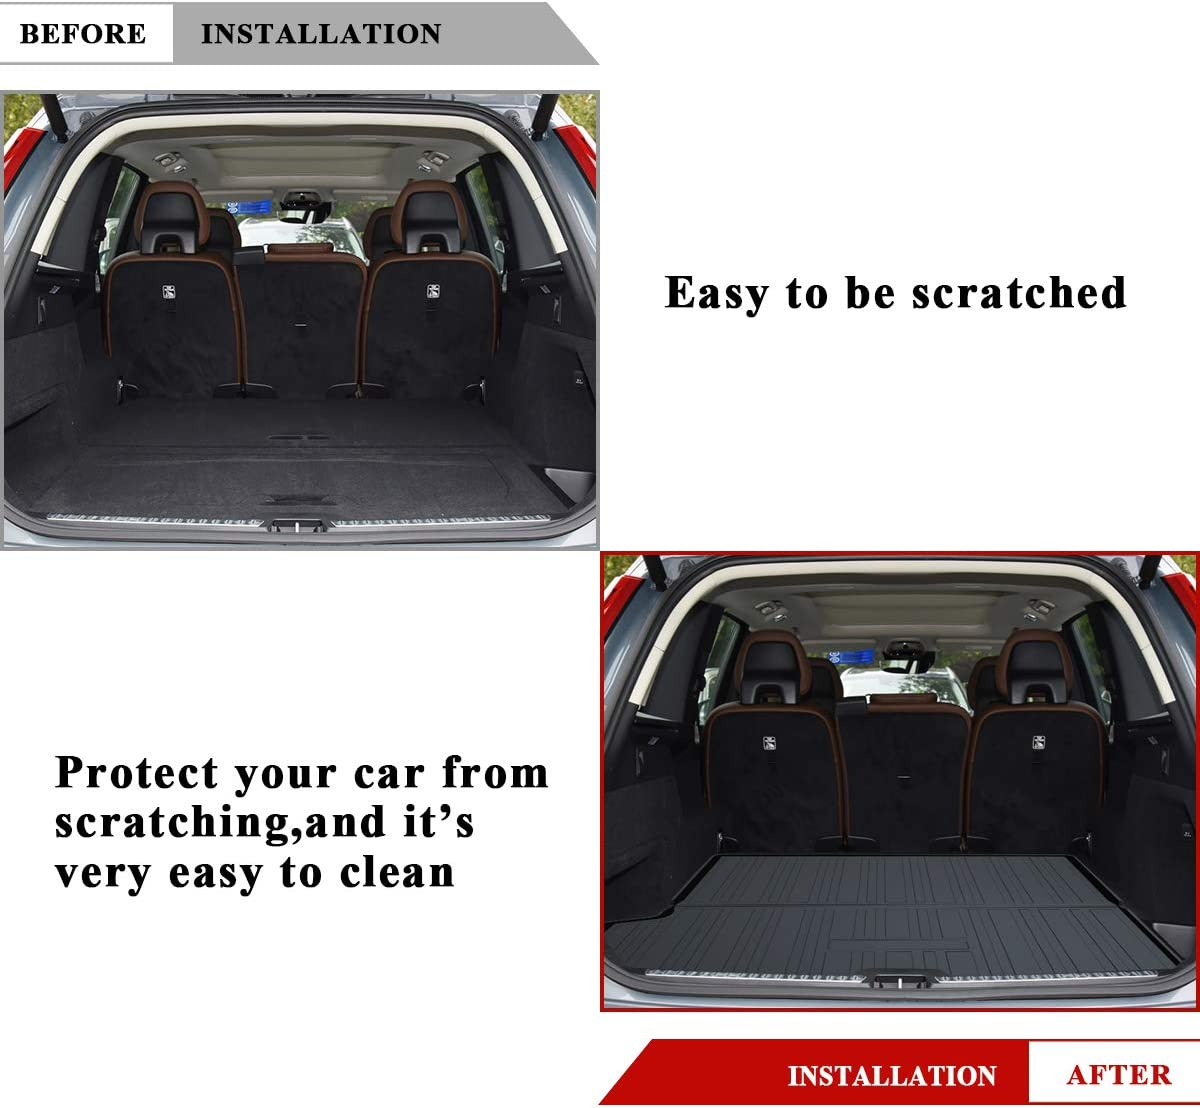 Size : Volvo S40 2006-2012 For XC90 2015 2016 2017 2018 2019 Vehicle Rear Cargo Liner Trunk Tray Floor Mat Sheet Carpet Luggage Tray Waterproof